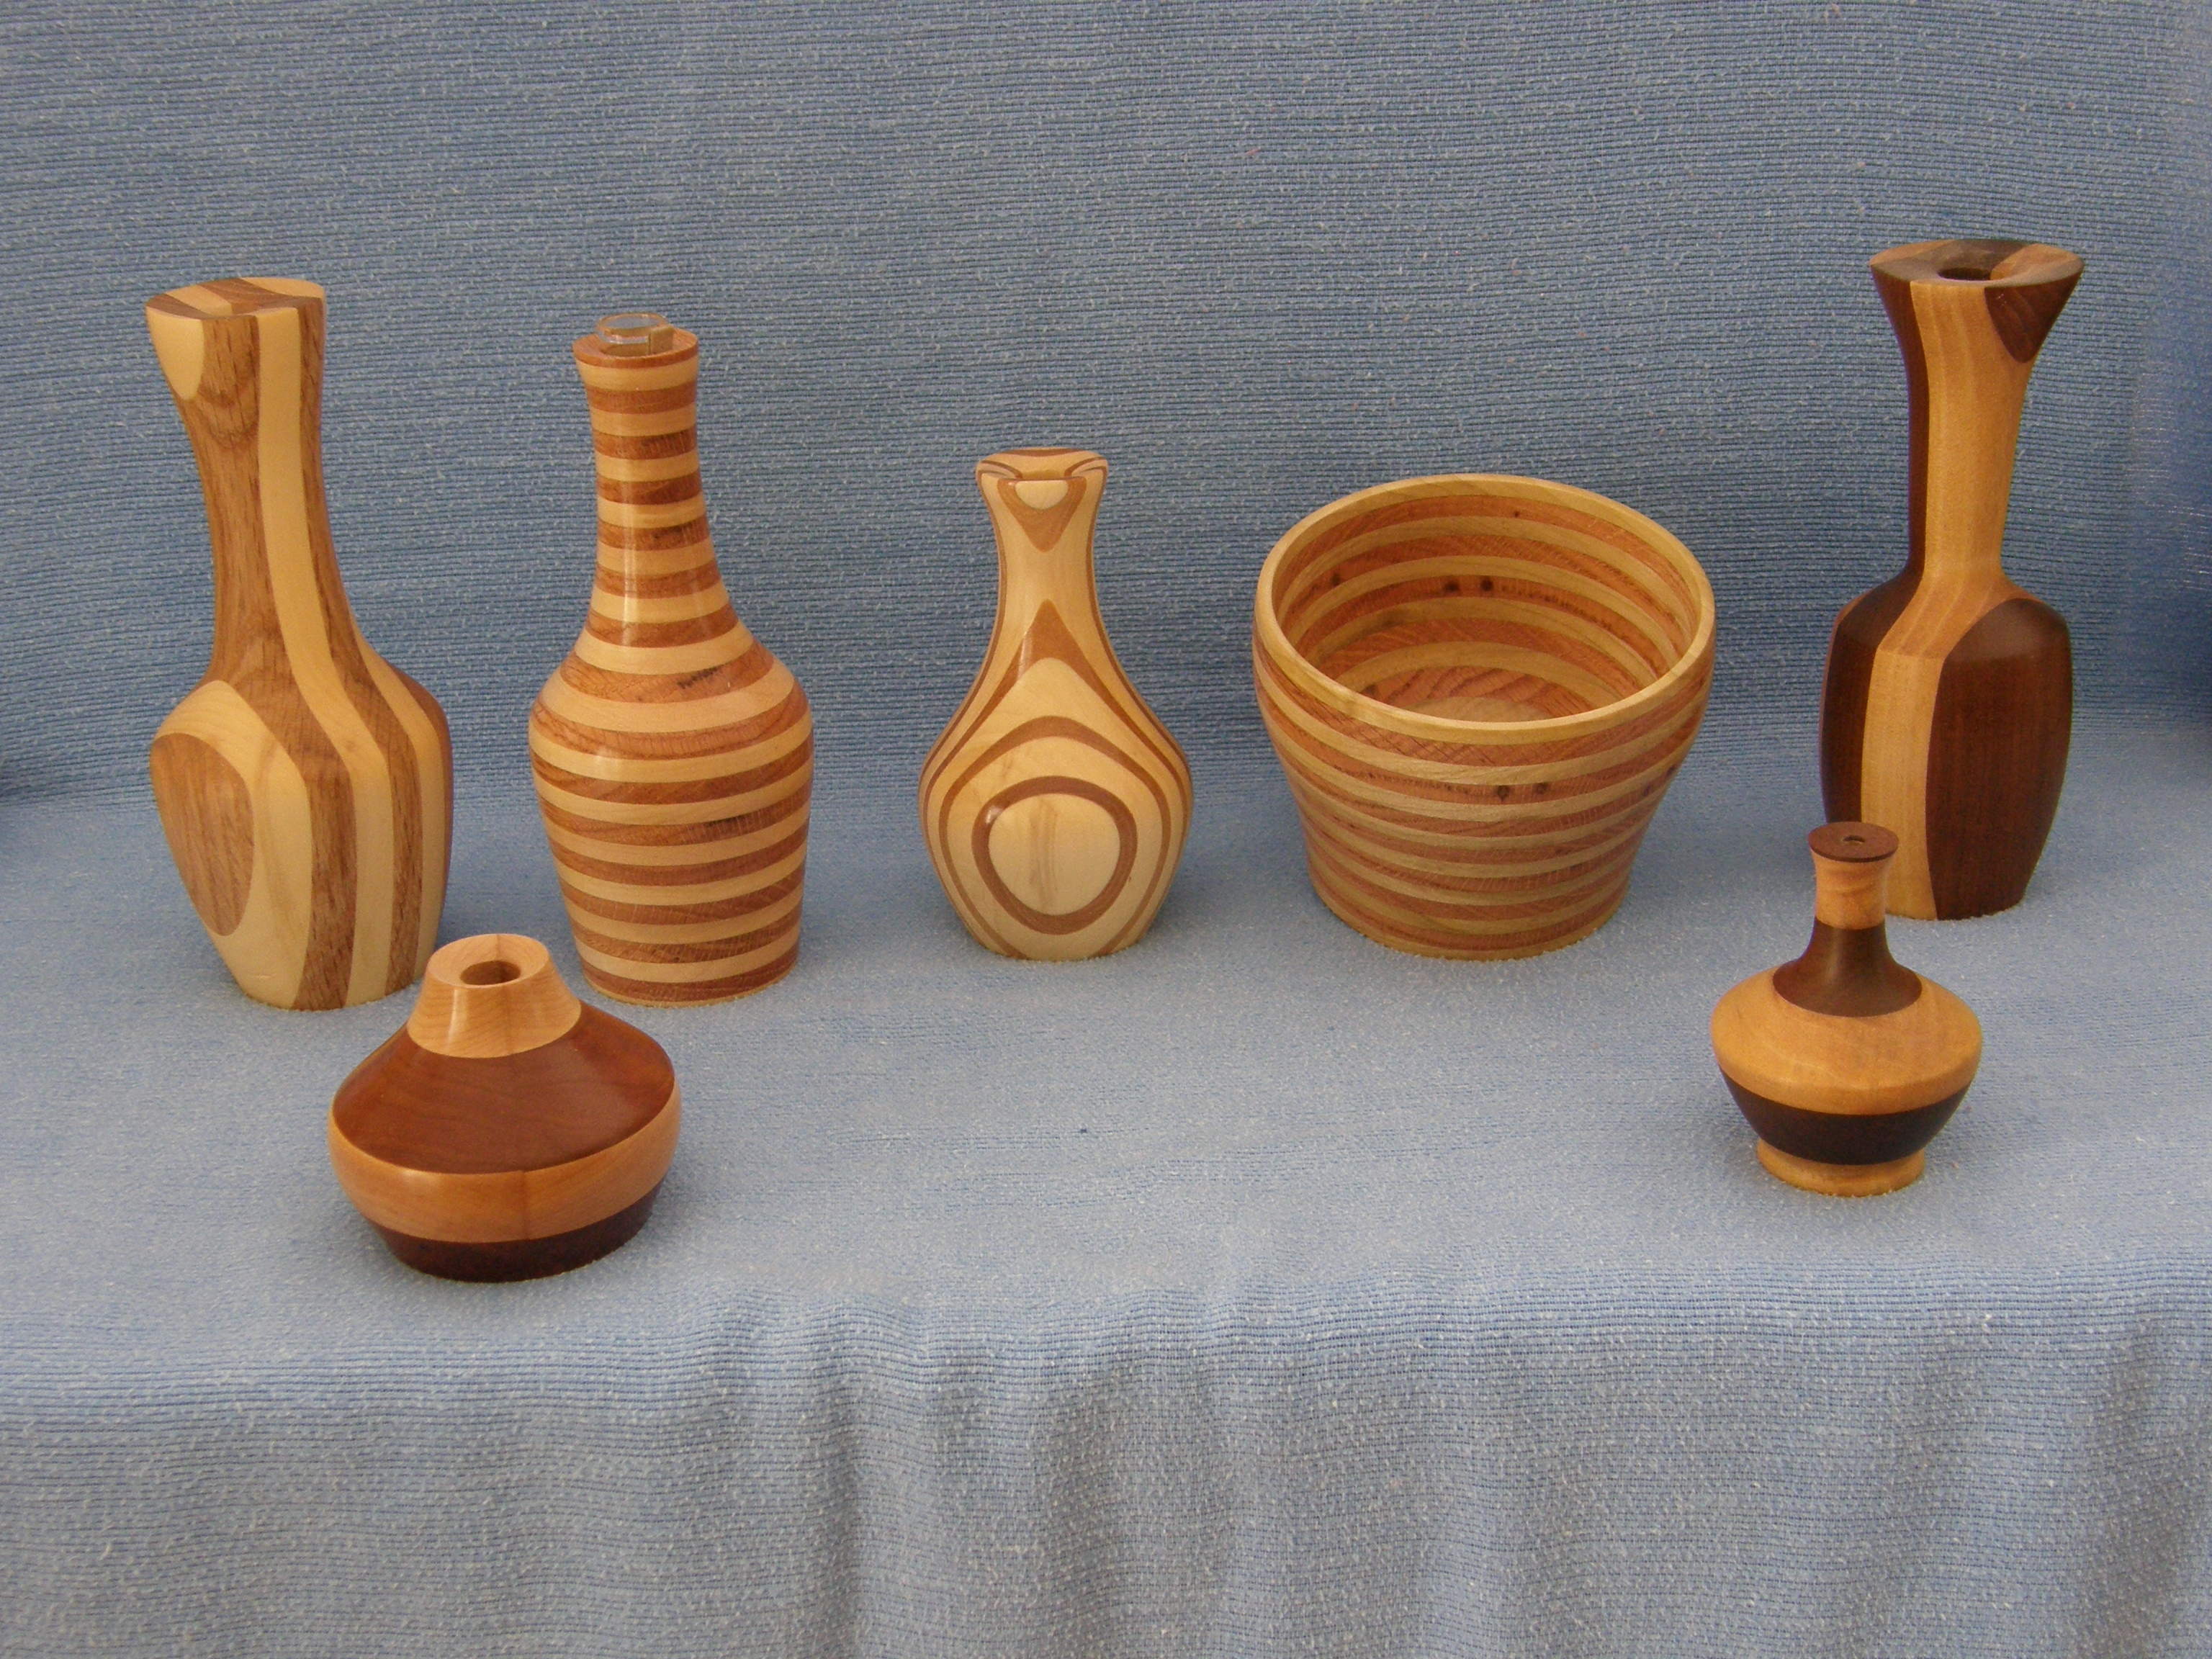 Striped collection.  Dark woods are red oak and black walnut.  Light woods are maple, aspen, and yellow poplar.